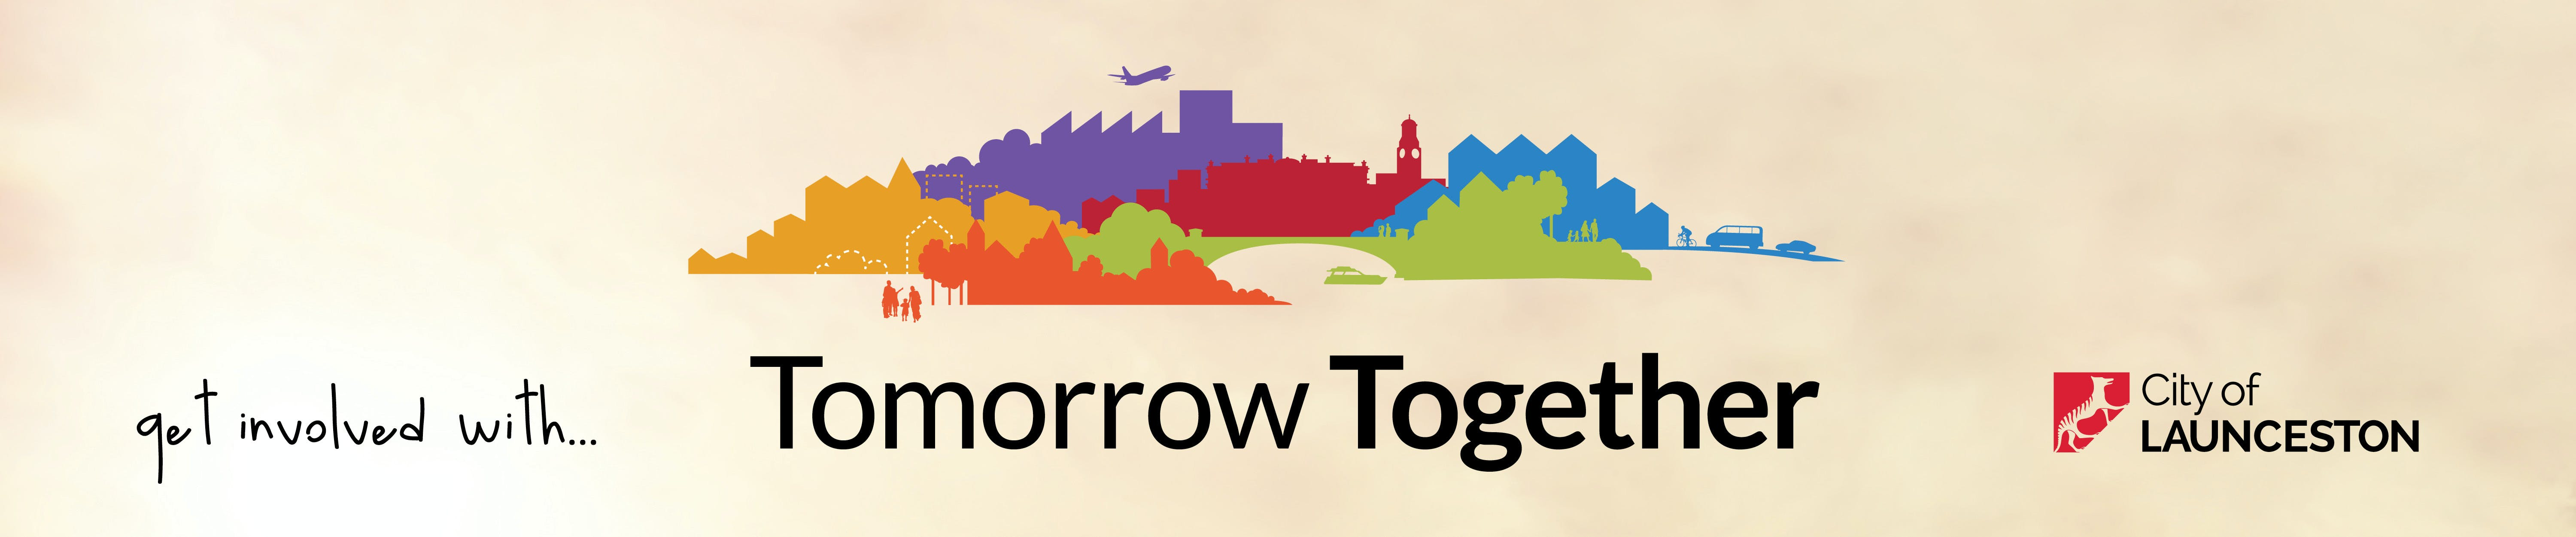 Get involved with Tomorrow Together and the City of Launceston.